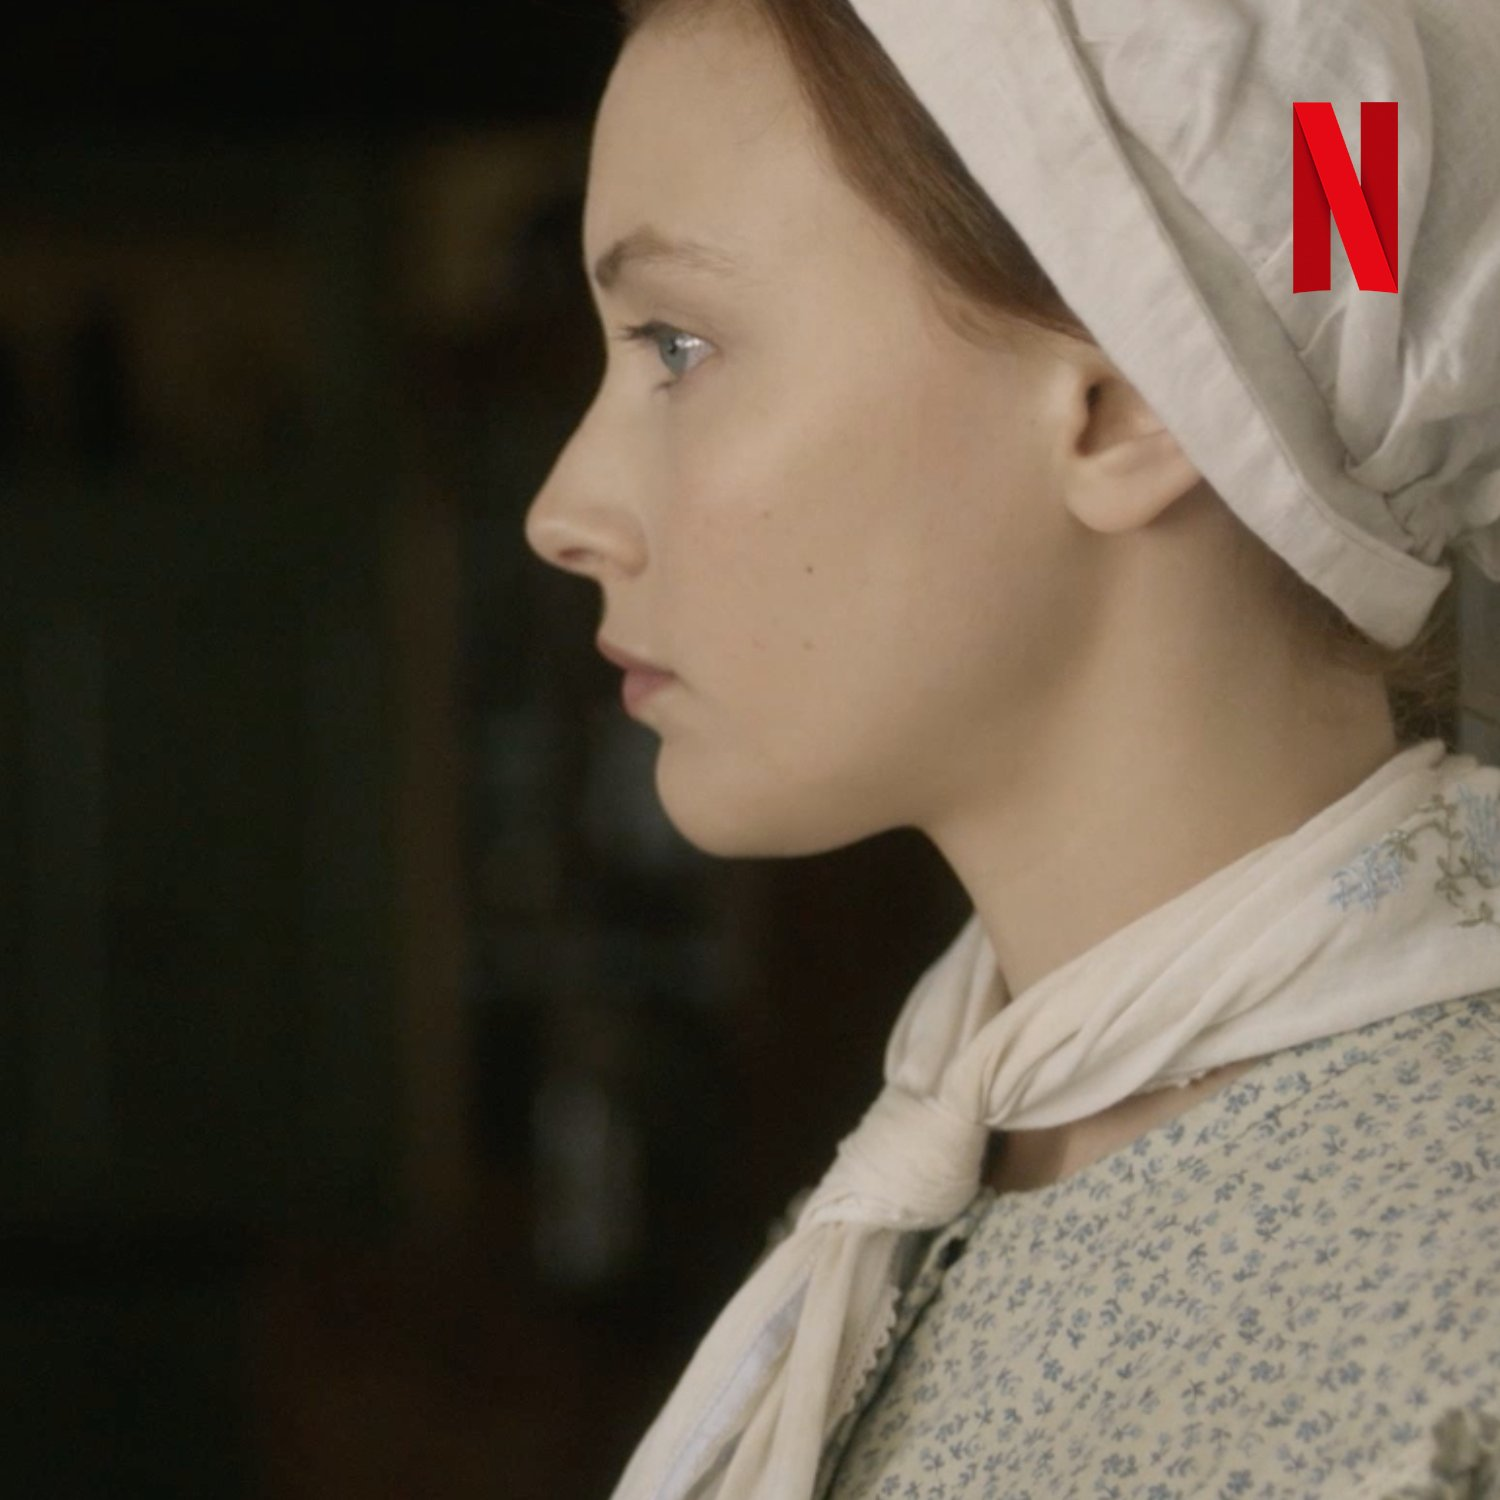 Alias Grace, a true-crime adaptation of the @MargaretAtwood novel, is now streaming. https://t.co/jDSZzgzVQr